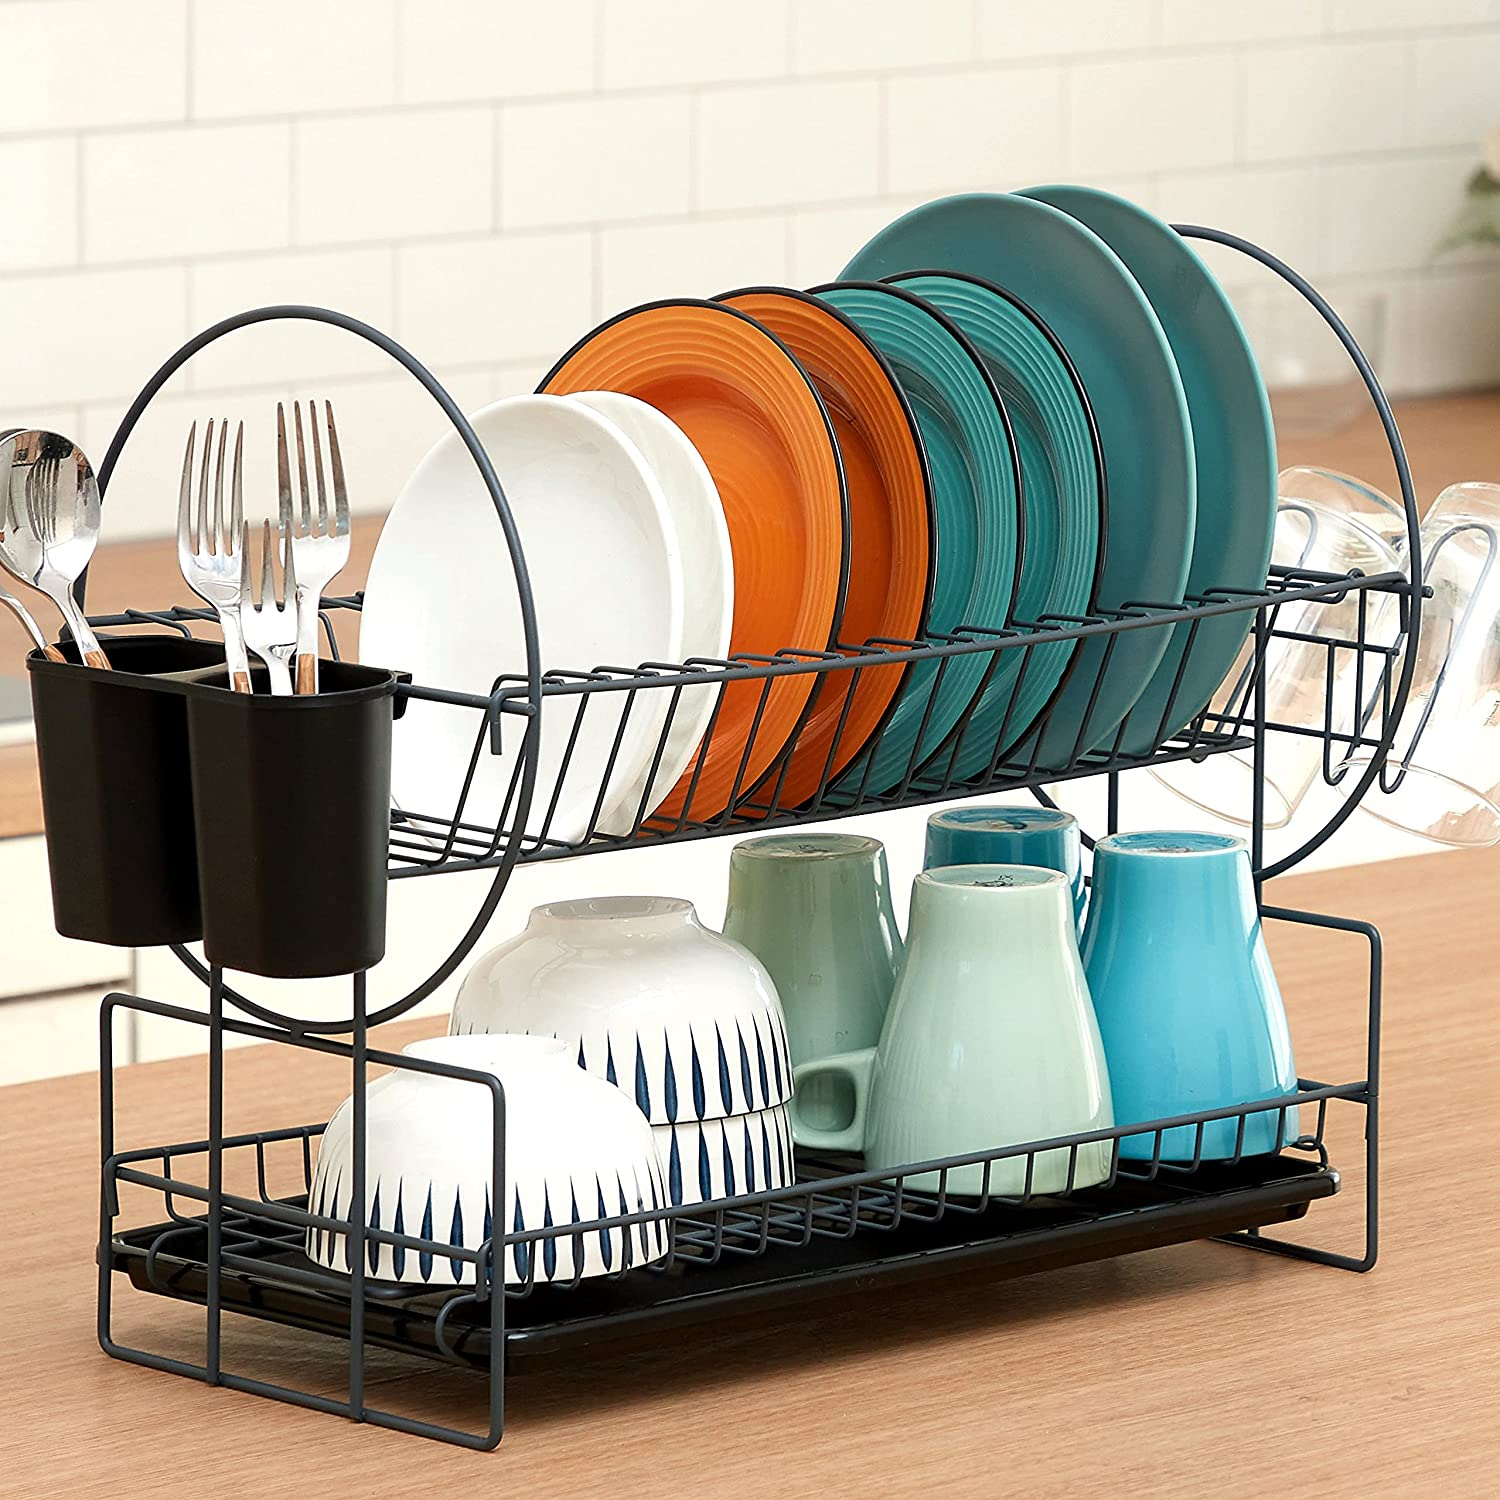 Dish Drying A surprise price is realized Rack 2 Tier Drainboard Cutler Max 47% OFF and Kitchen